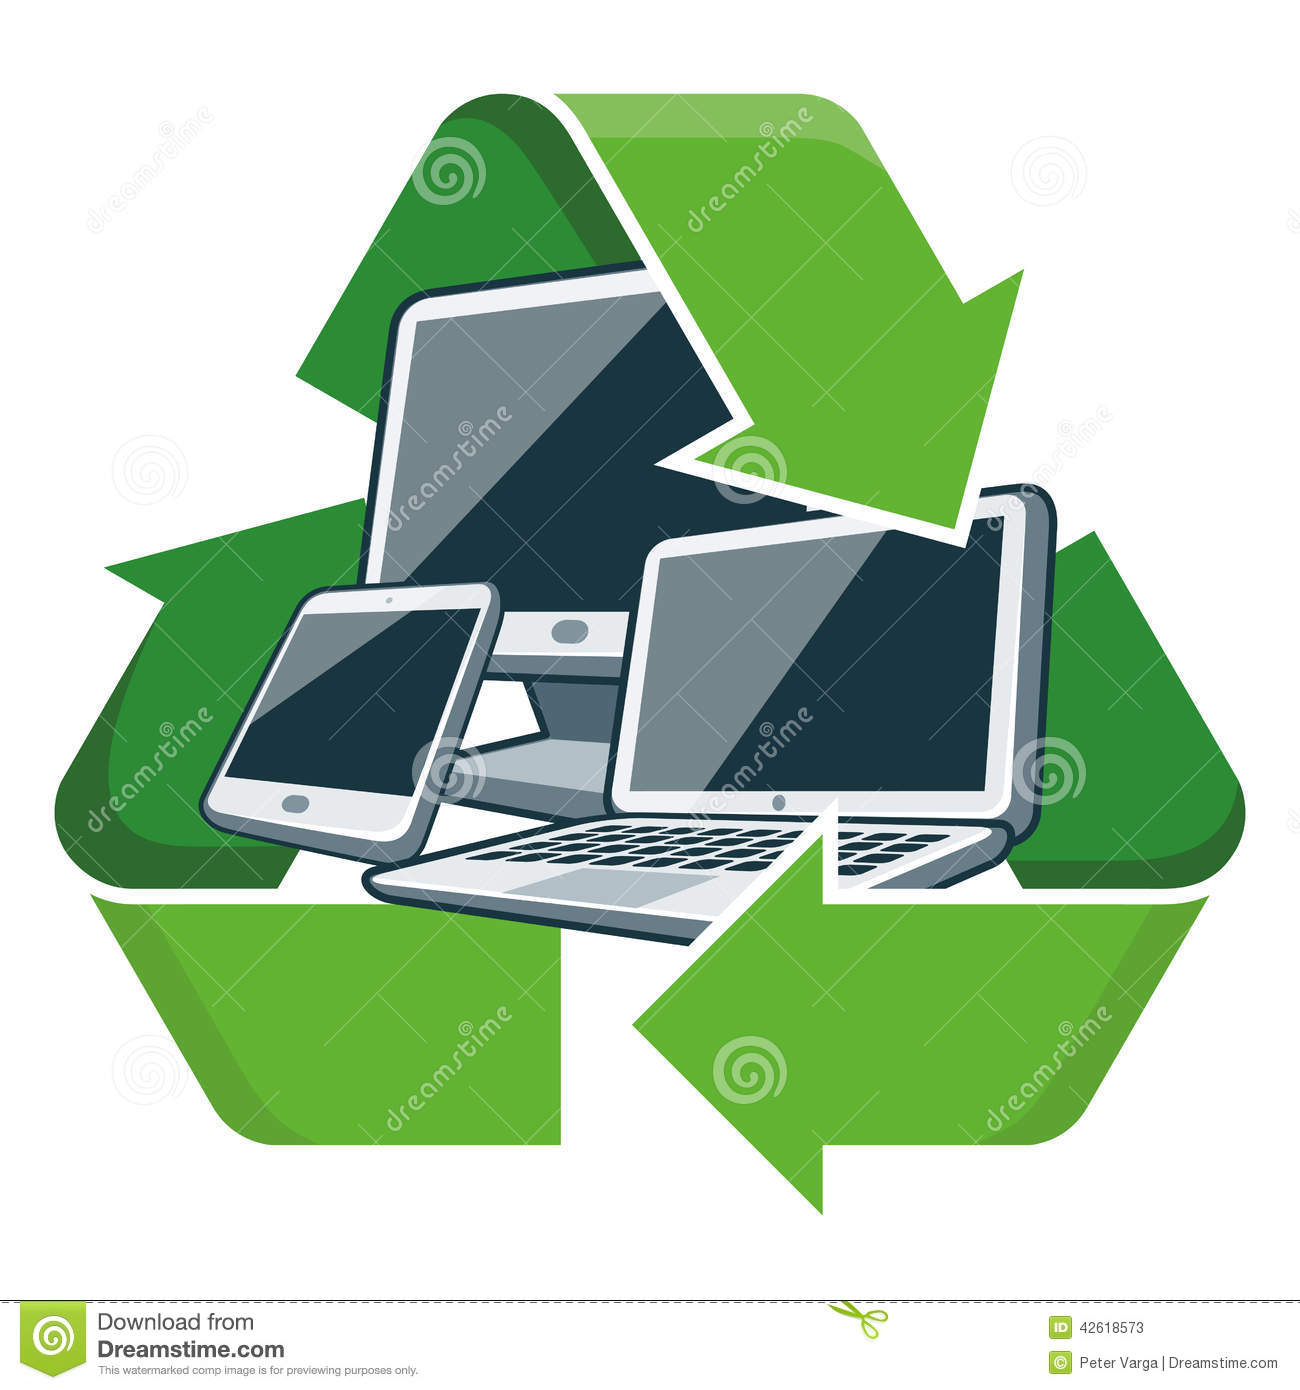 Recycle Electronic Devices Stock Vector Illustration Of Reuse